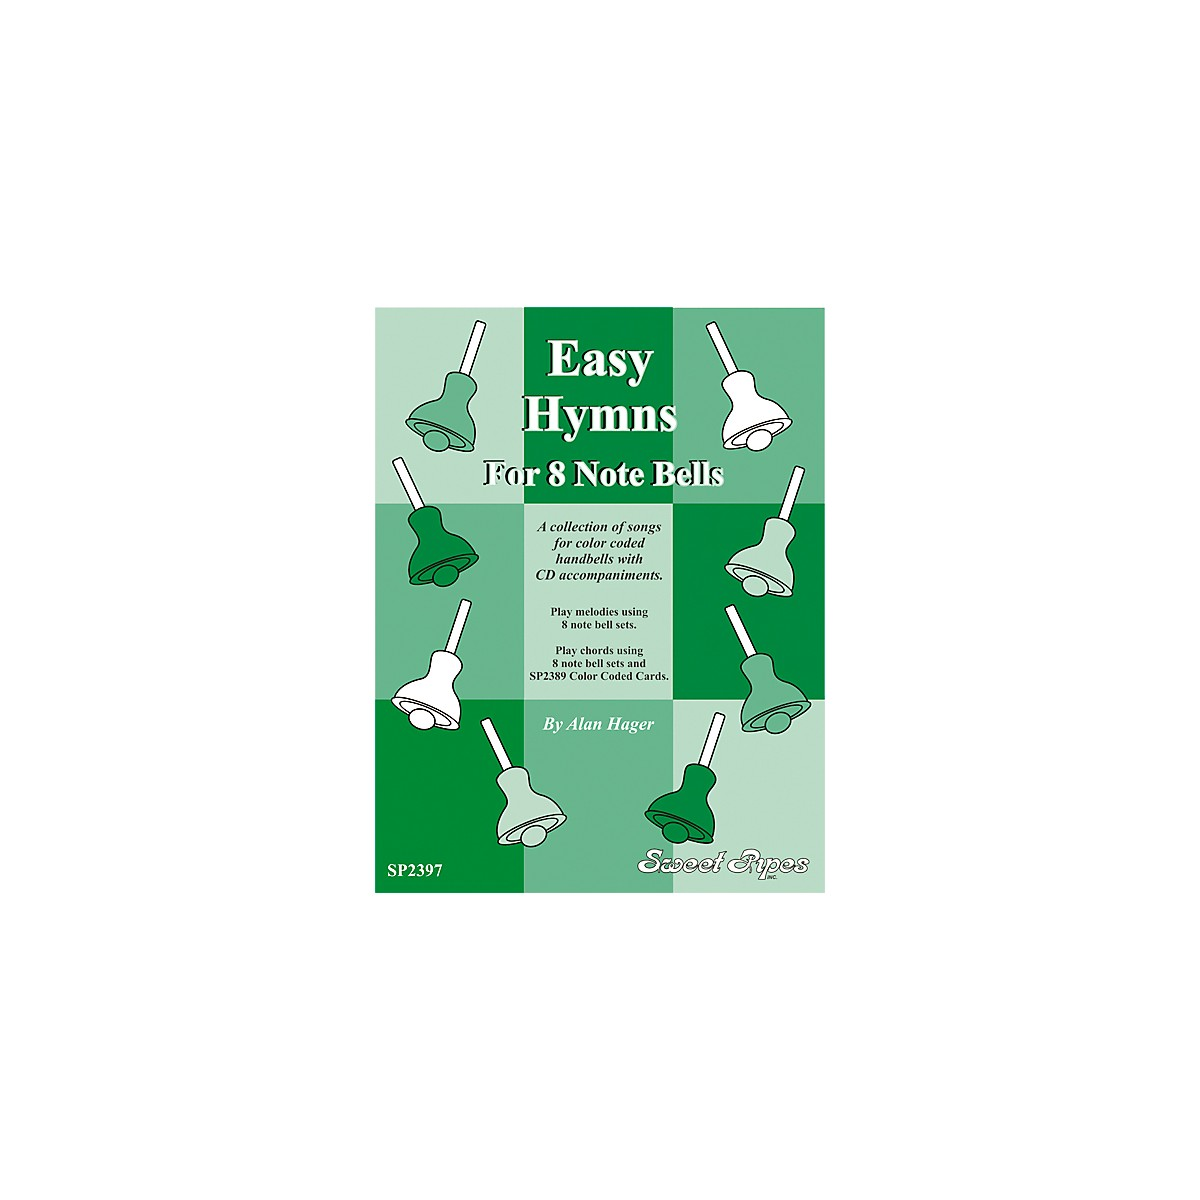 Rhythm Band Easy Hymns - 12 Hymns for 8 Note Handbells & Deskbells Book with CD